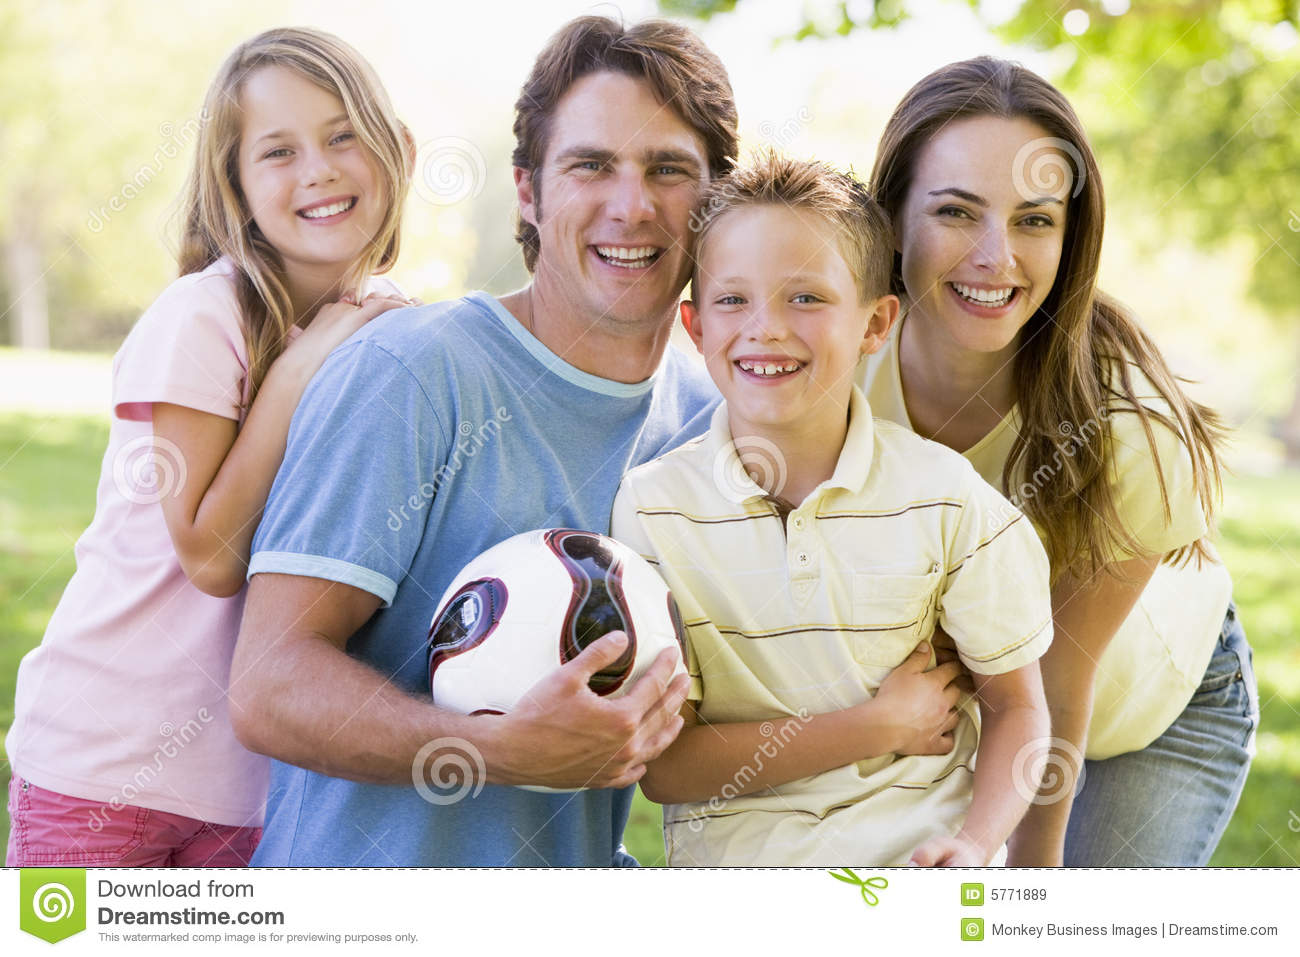 Family standing holding volleyball smiling